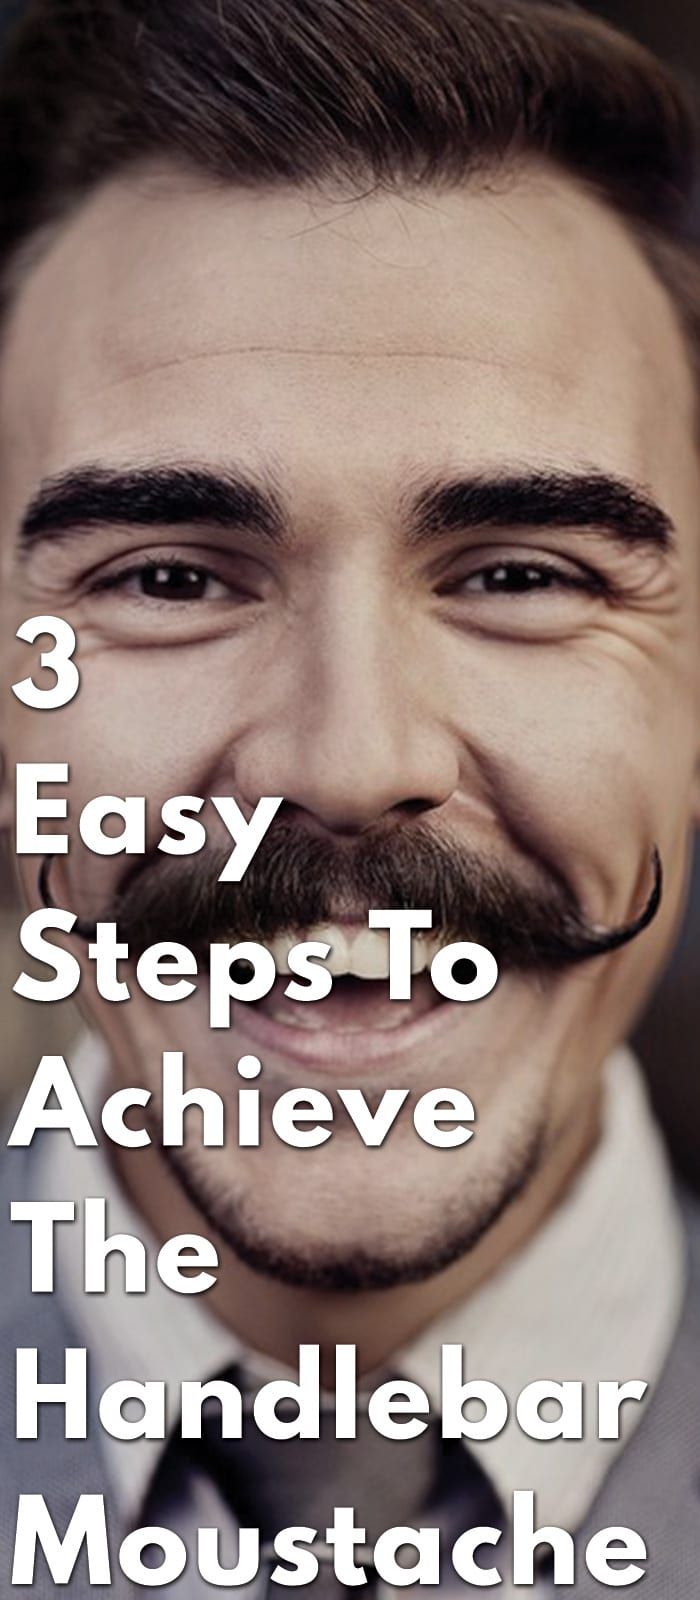 3-Easy-Steps-to-Achieve-the-Handlebar-Moustache.